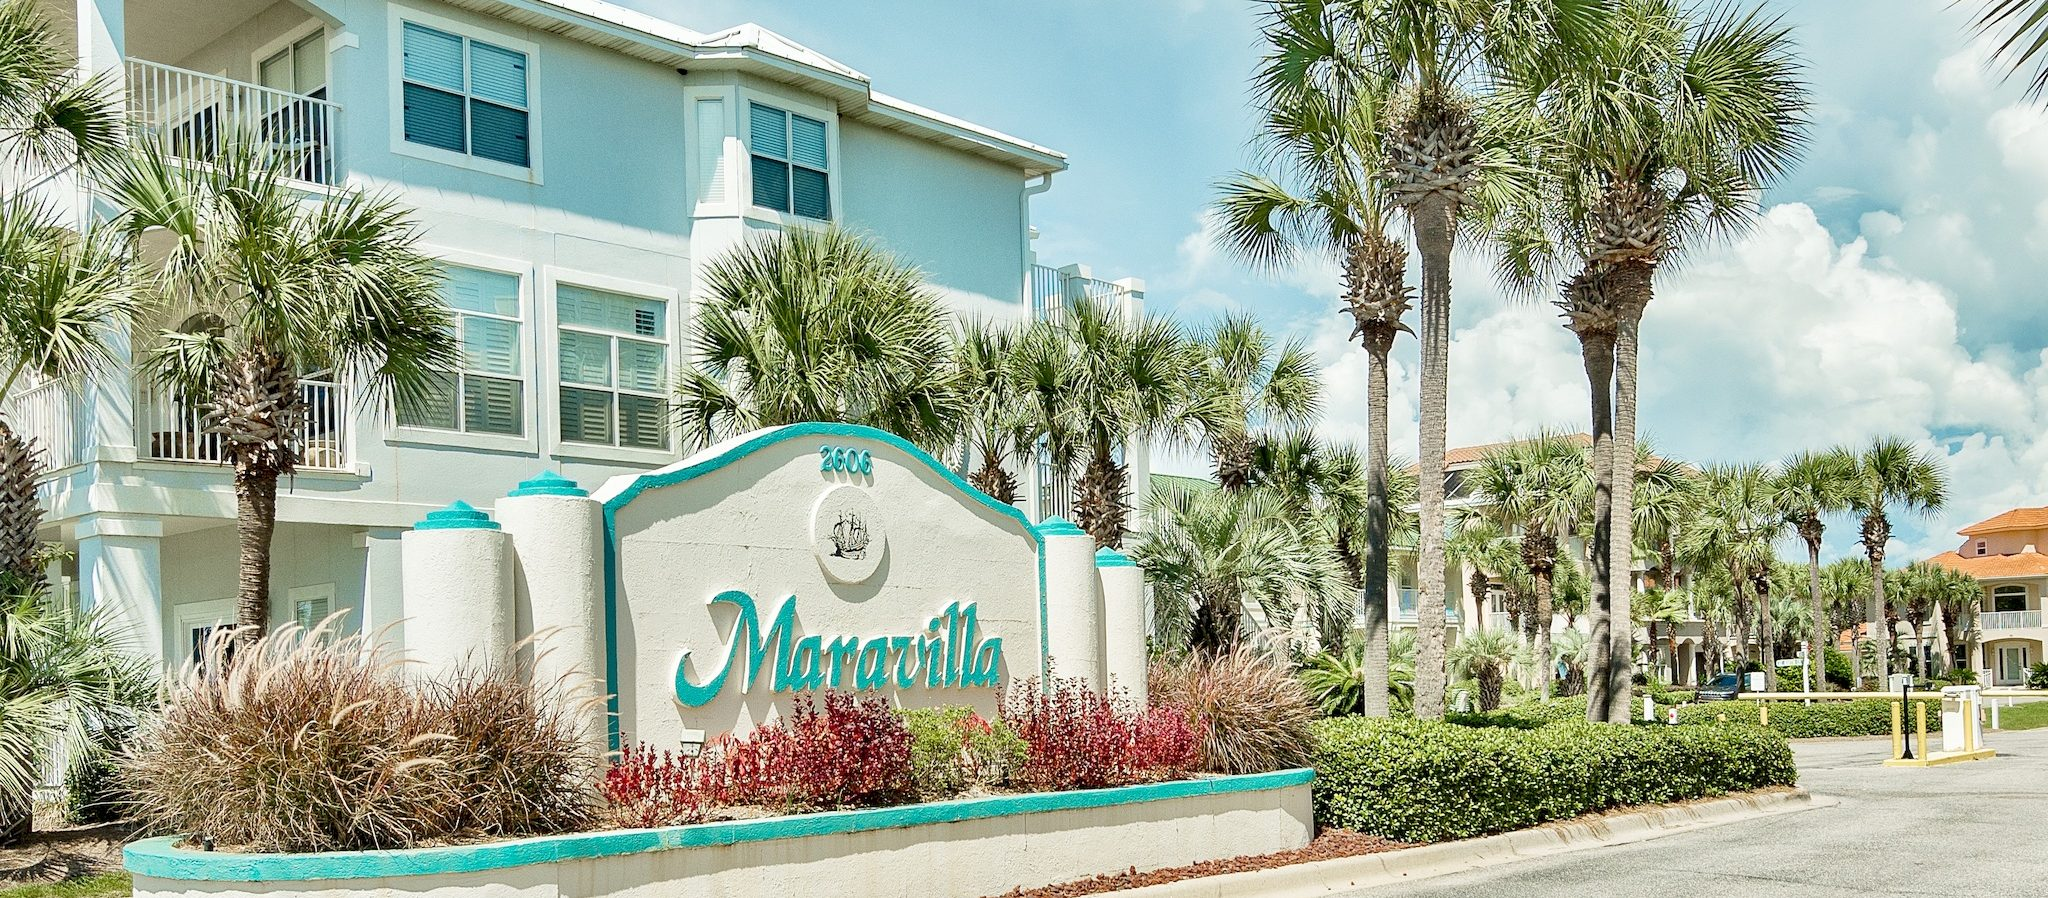 We have beach condos for rent at Maravilla.